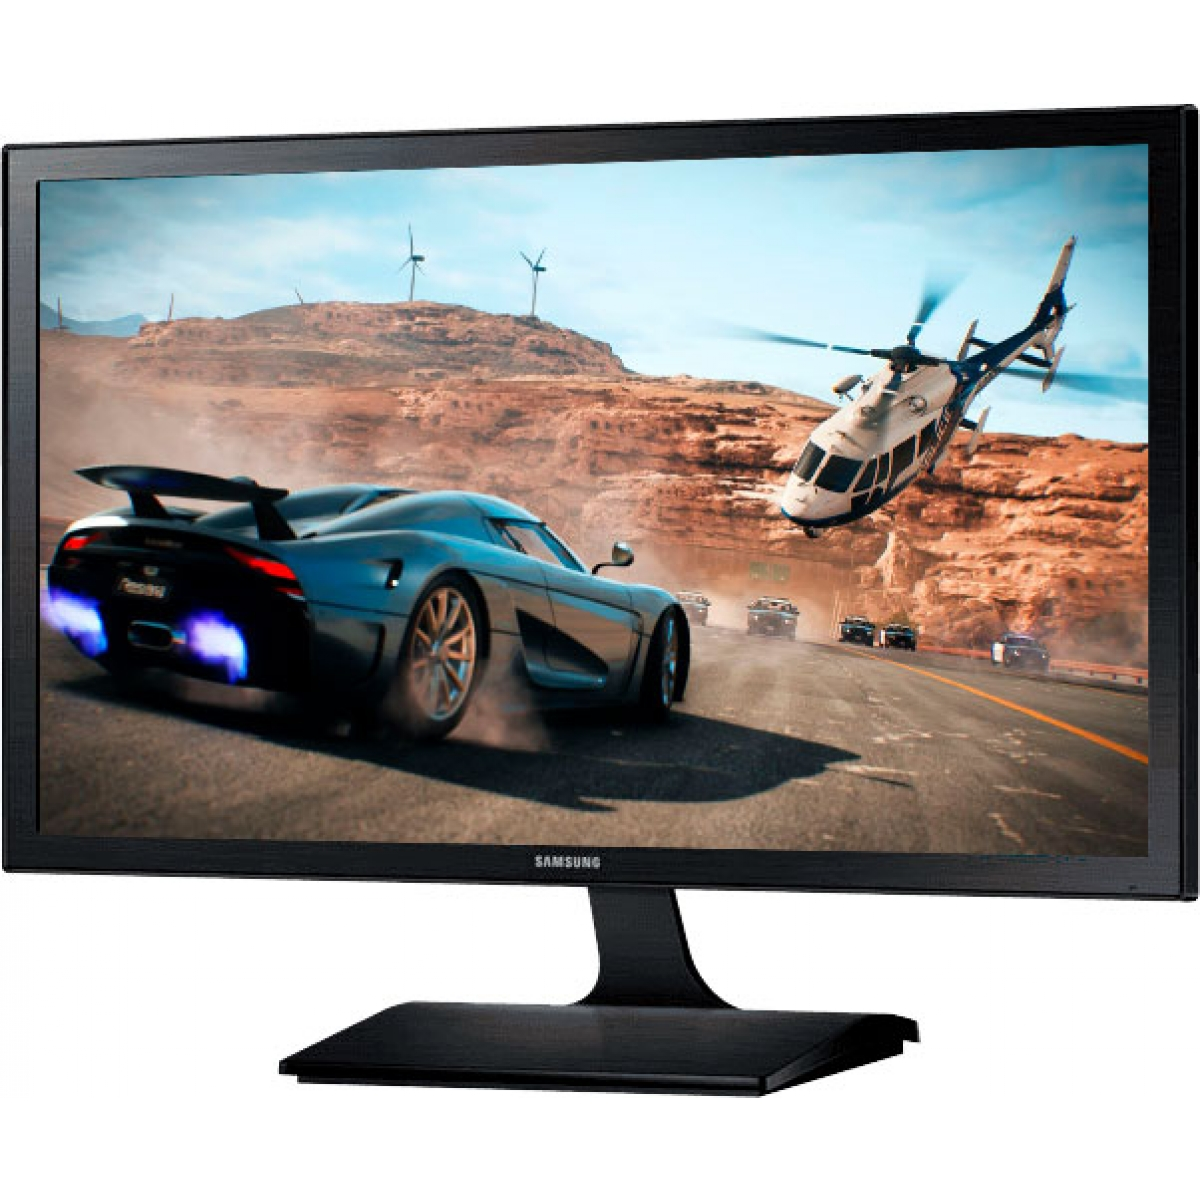 Monitor Gamer Samsung 21.5 Pol, Full HD, LS22E310HYMZD